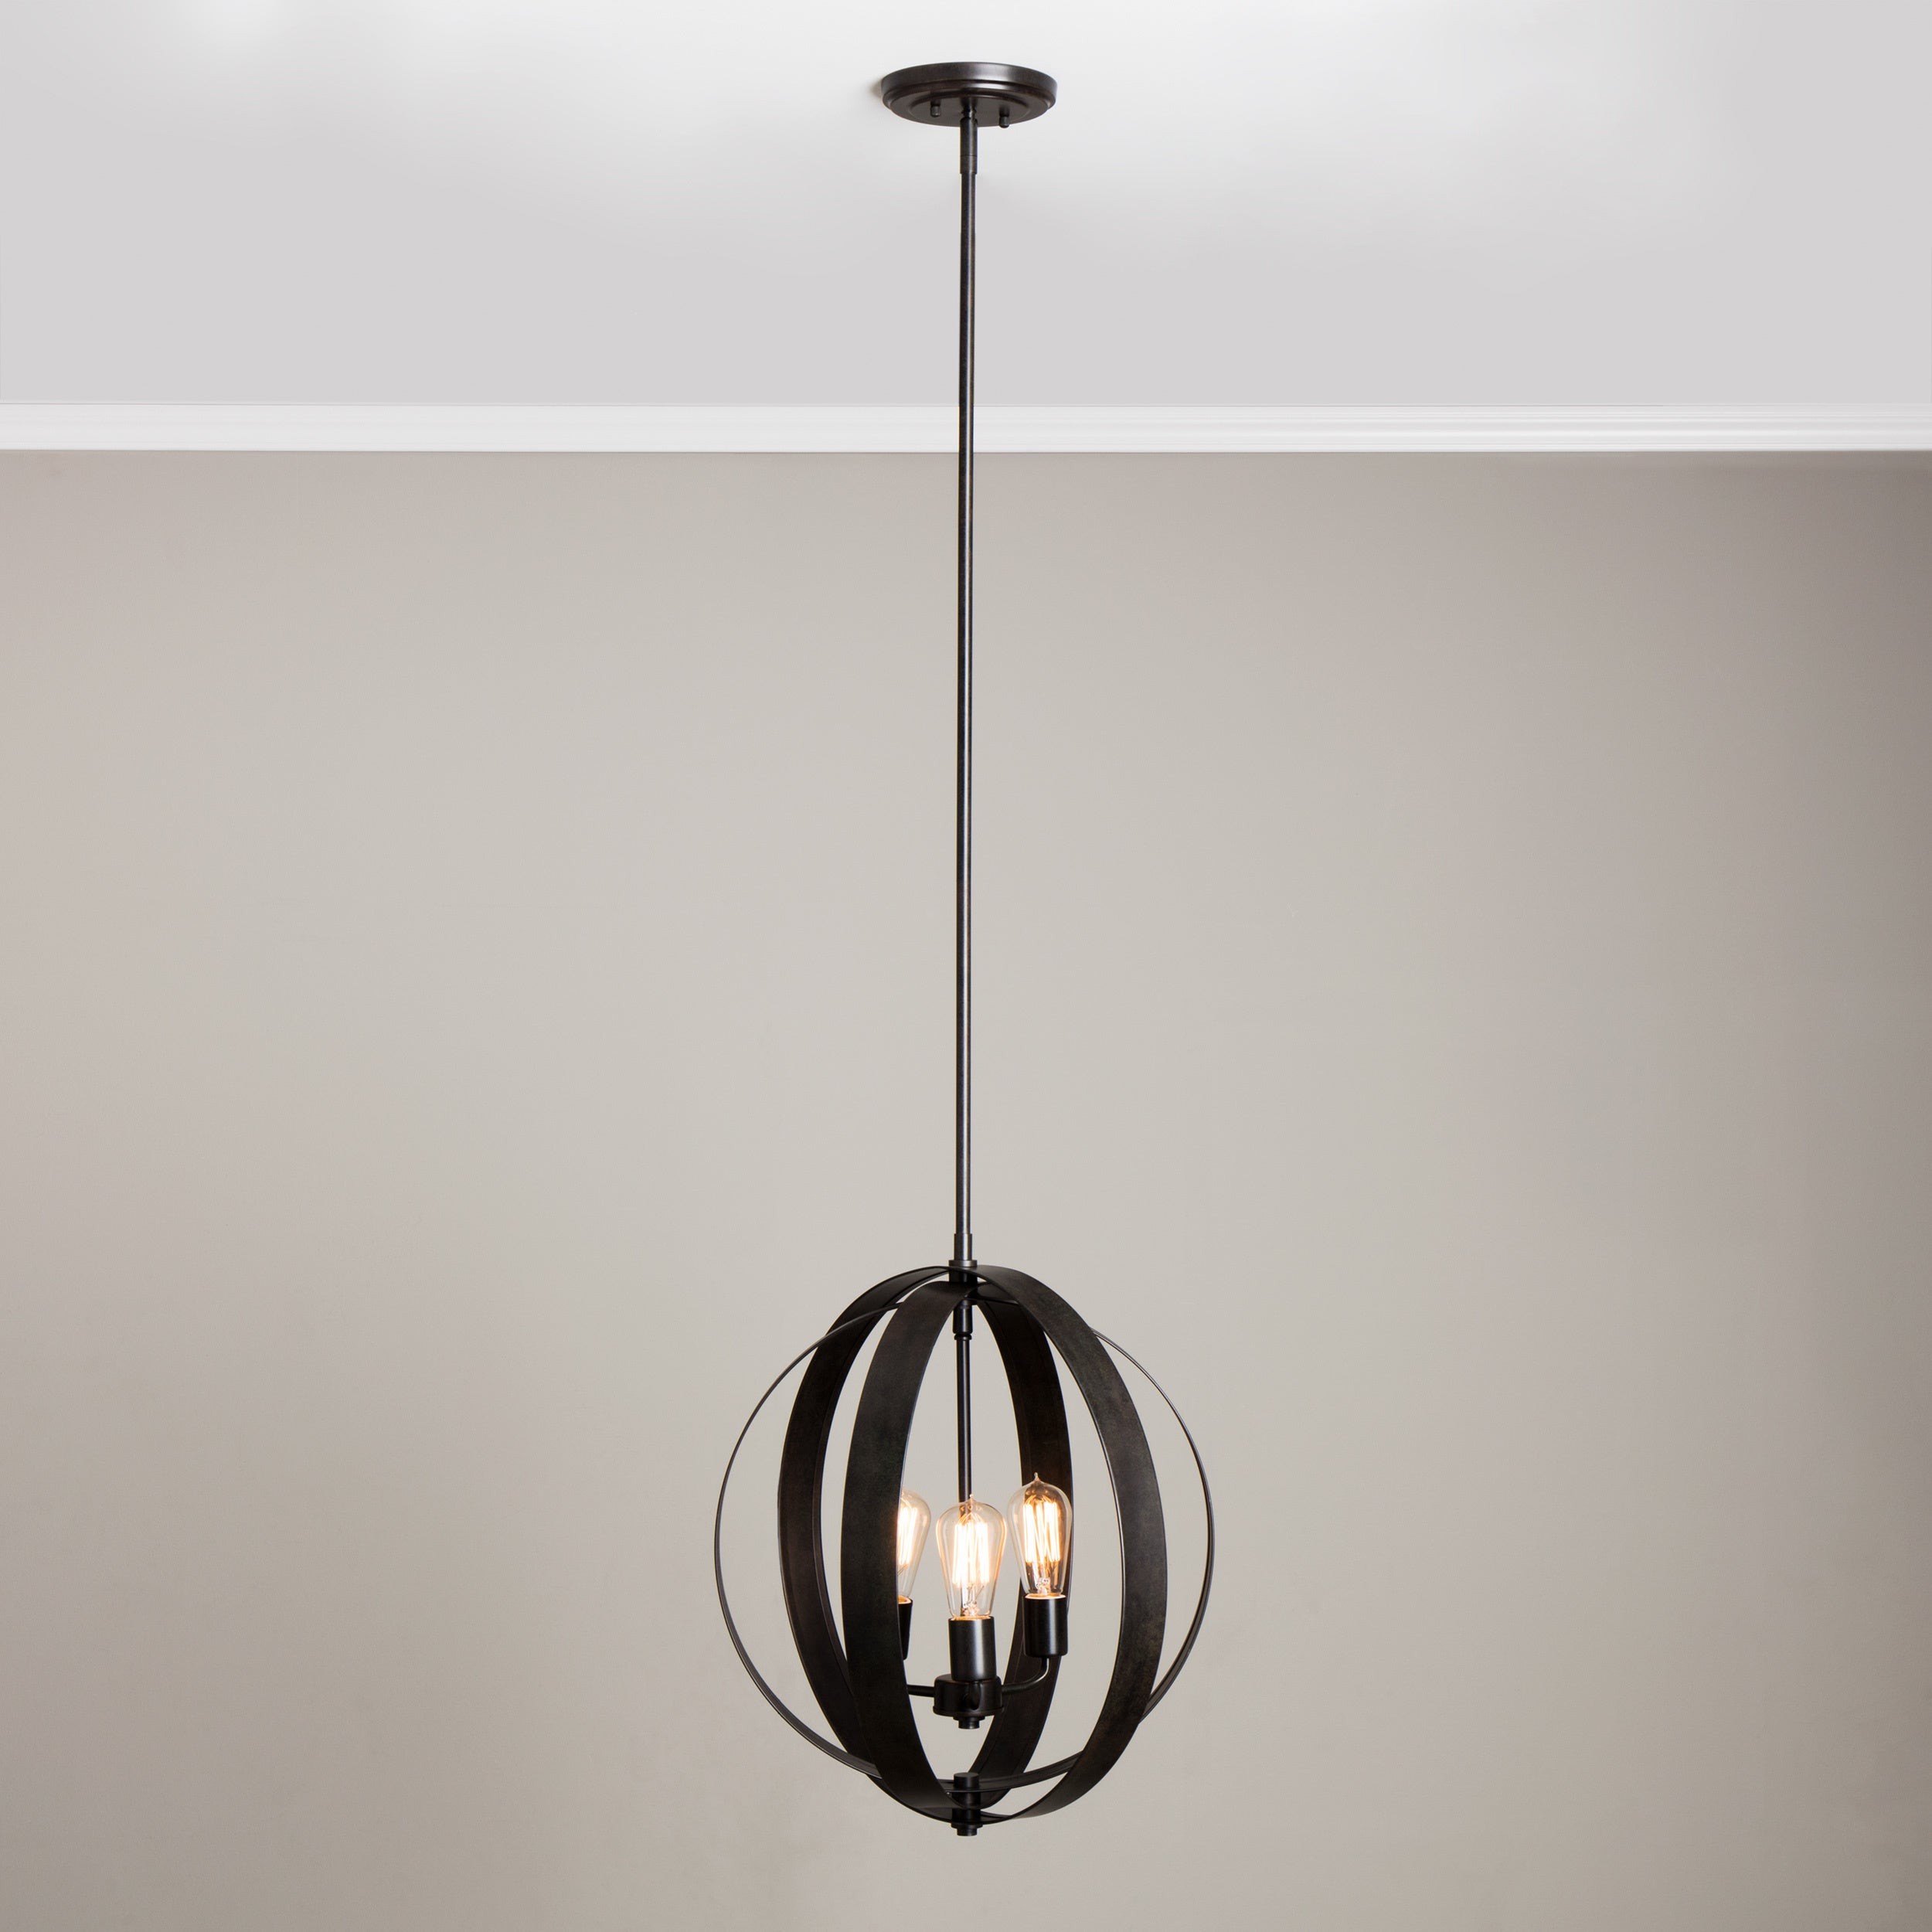 Cassidy antiqued black 3 light orb chandelier free shipping today cassidy antiqued black 3 light orb chandelier free shipping today overstock 15921216 aloadofball Gallery